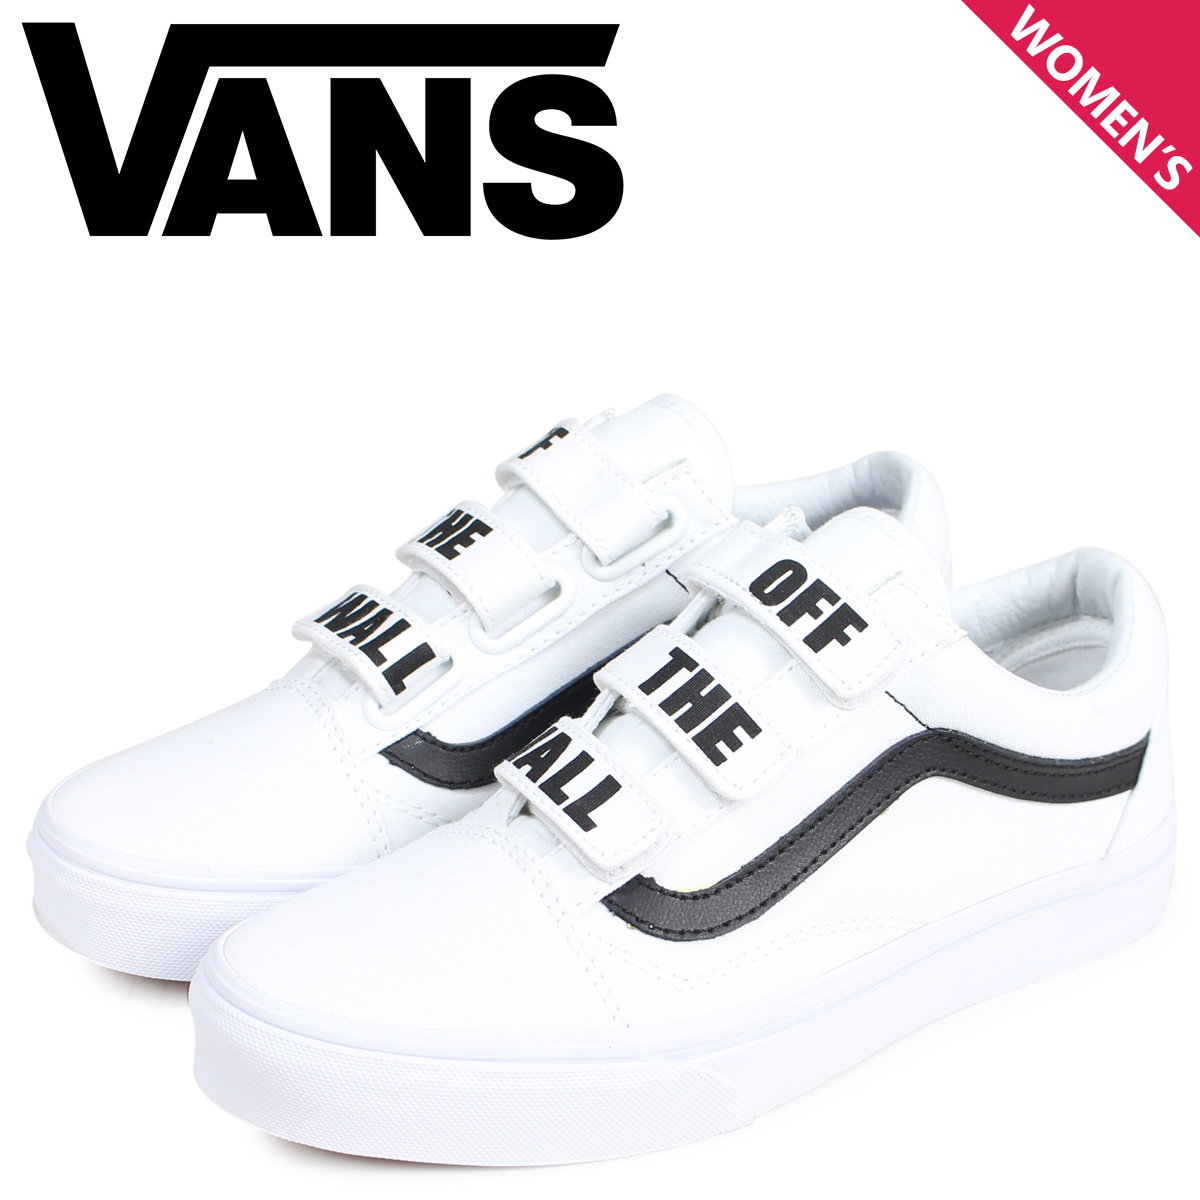 Vans VANS old school sneakers Velcro Lady's station wagons OLD SKOOL V OFF THE WALL white white VN0A3D29R2Q